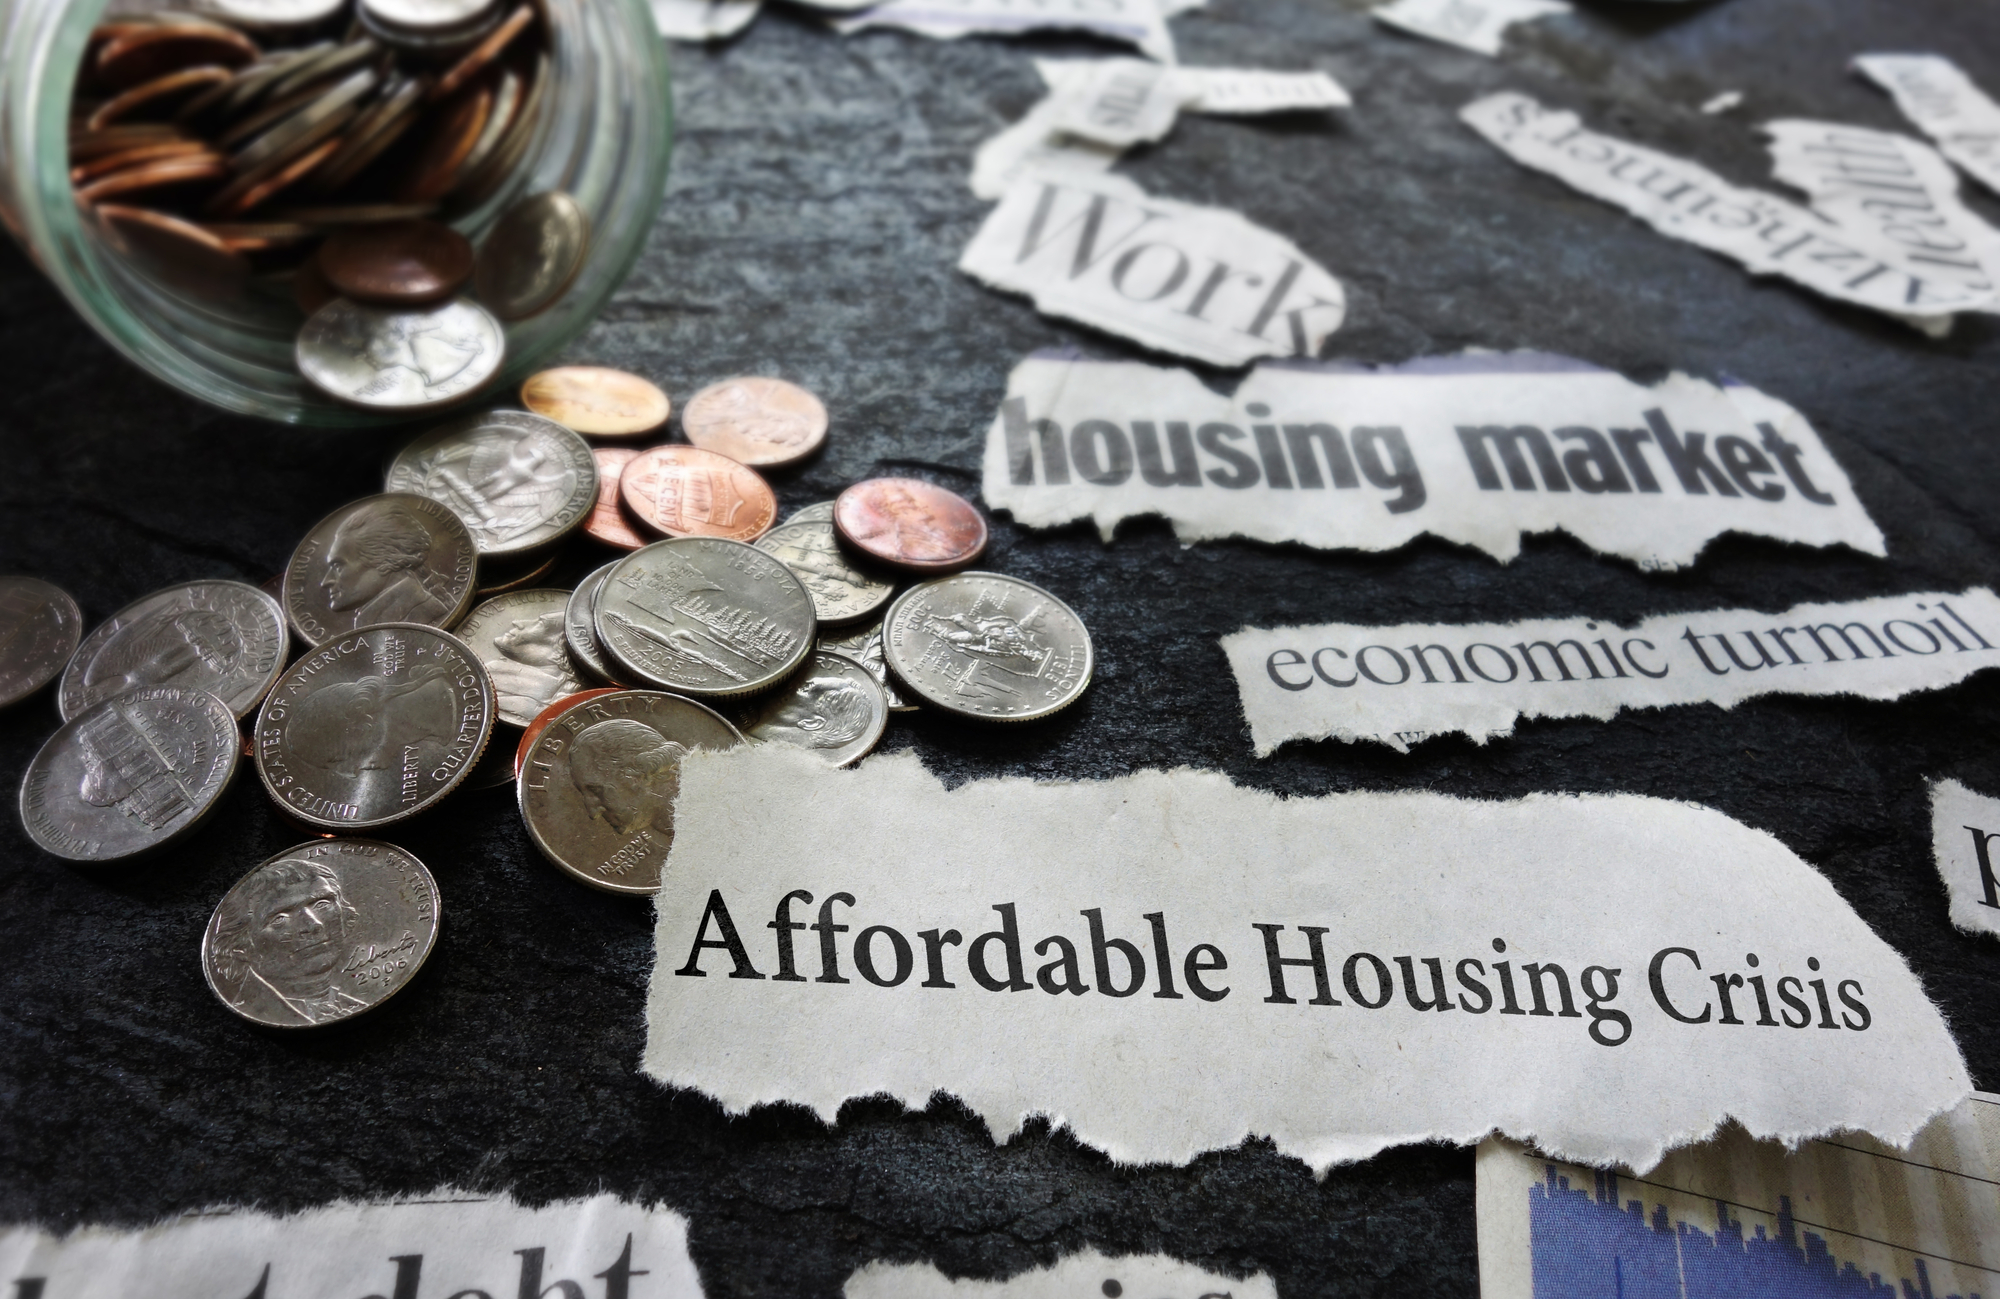 Affordable Housing Crisis news